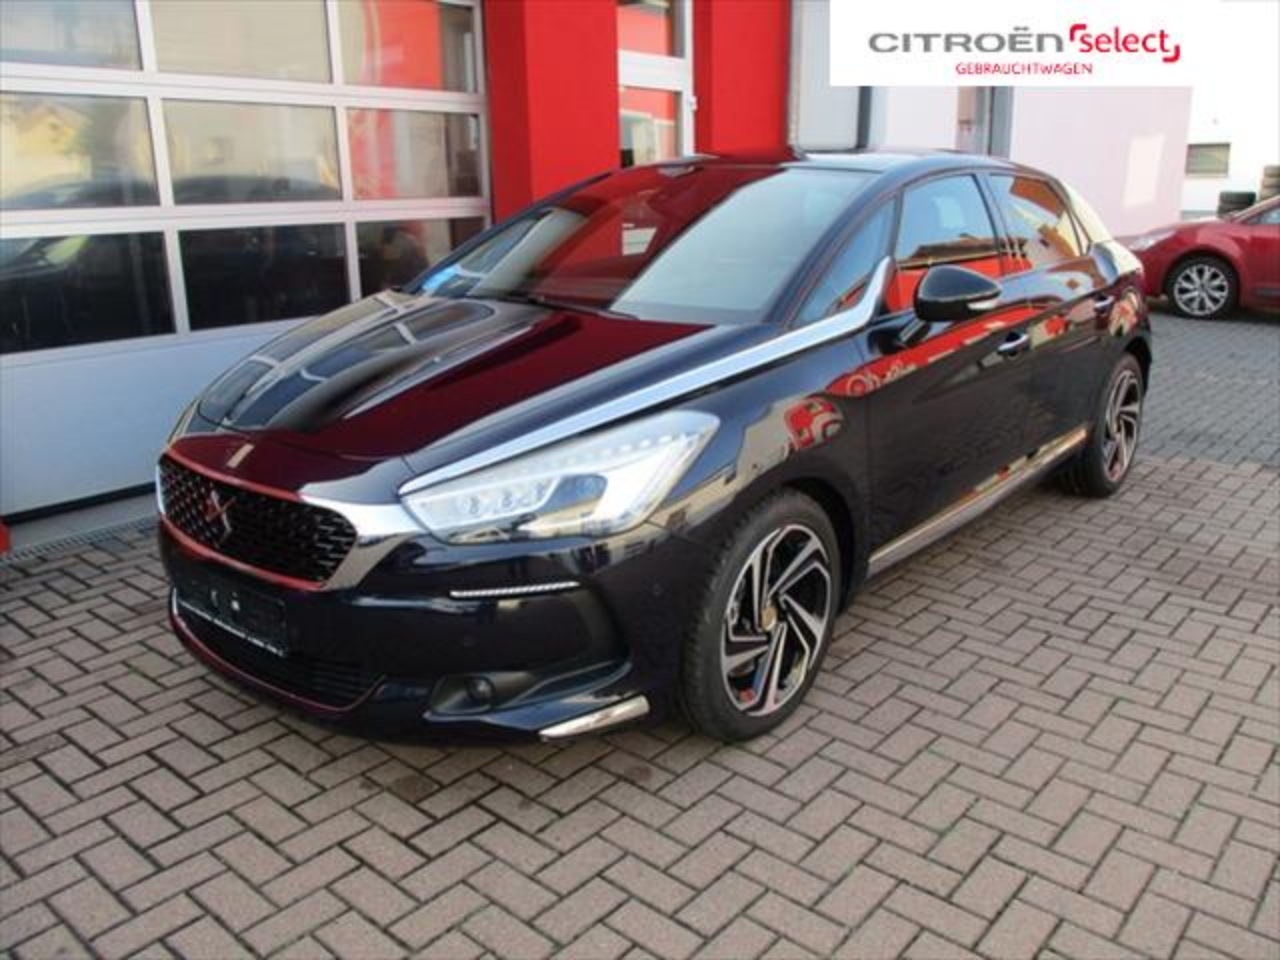 Ds DS 5 HDi 180 Limited Edition 1955 Navi Xenon Kamera Led